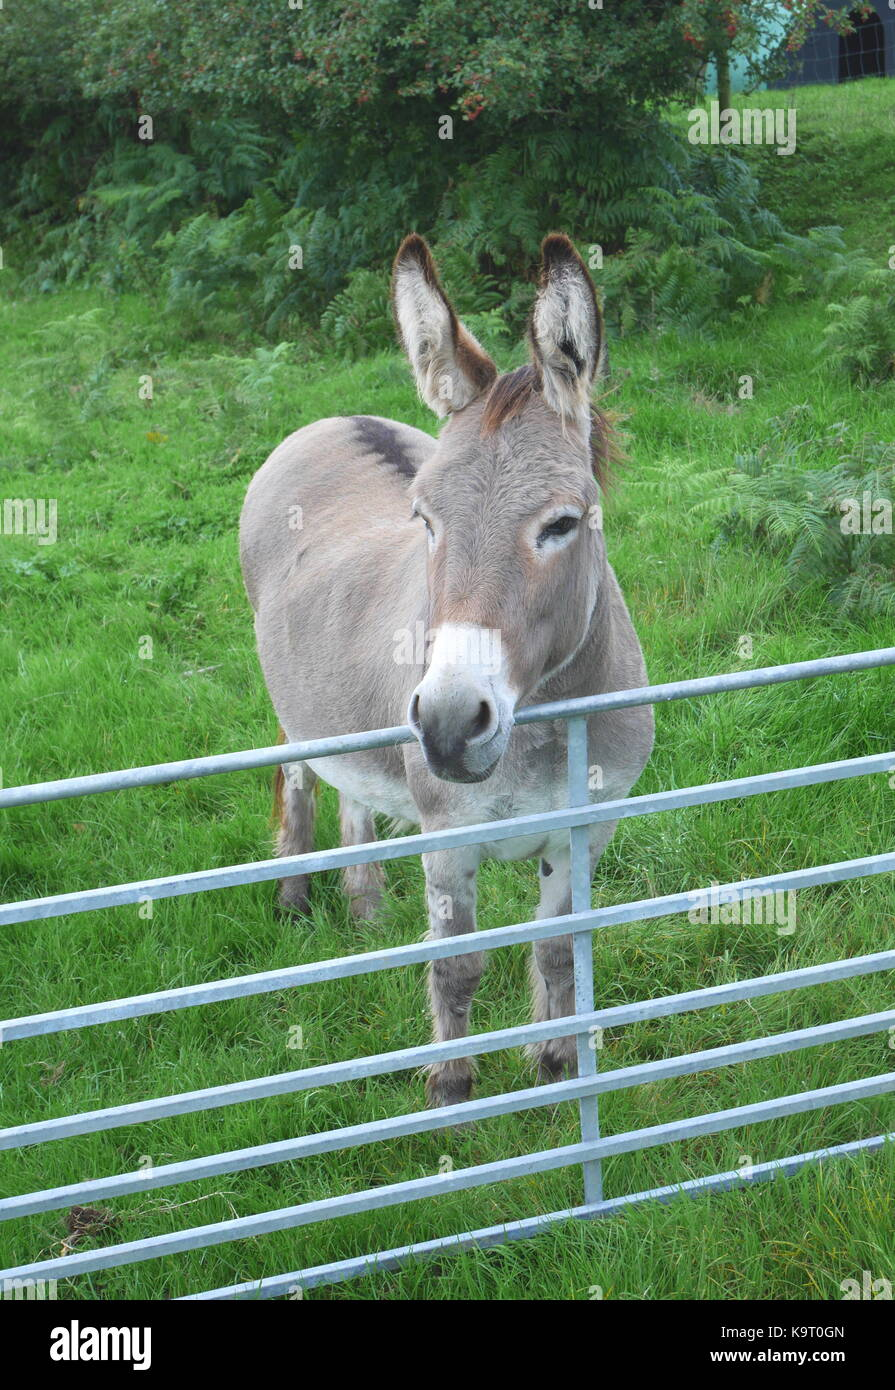 Lugubrious grey donkey in a field on a farm behind a gate, Wales, UK - Stock Image